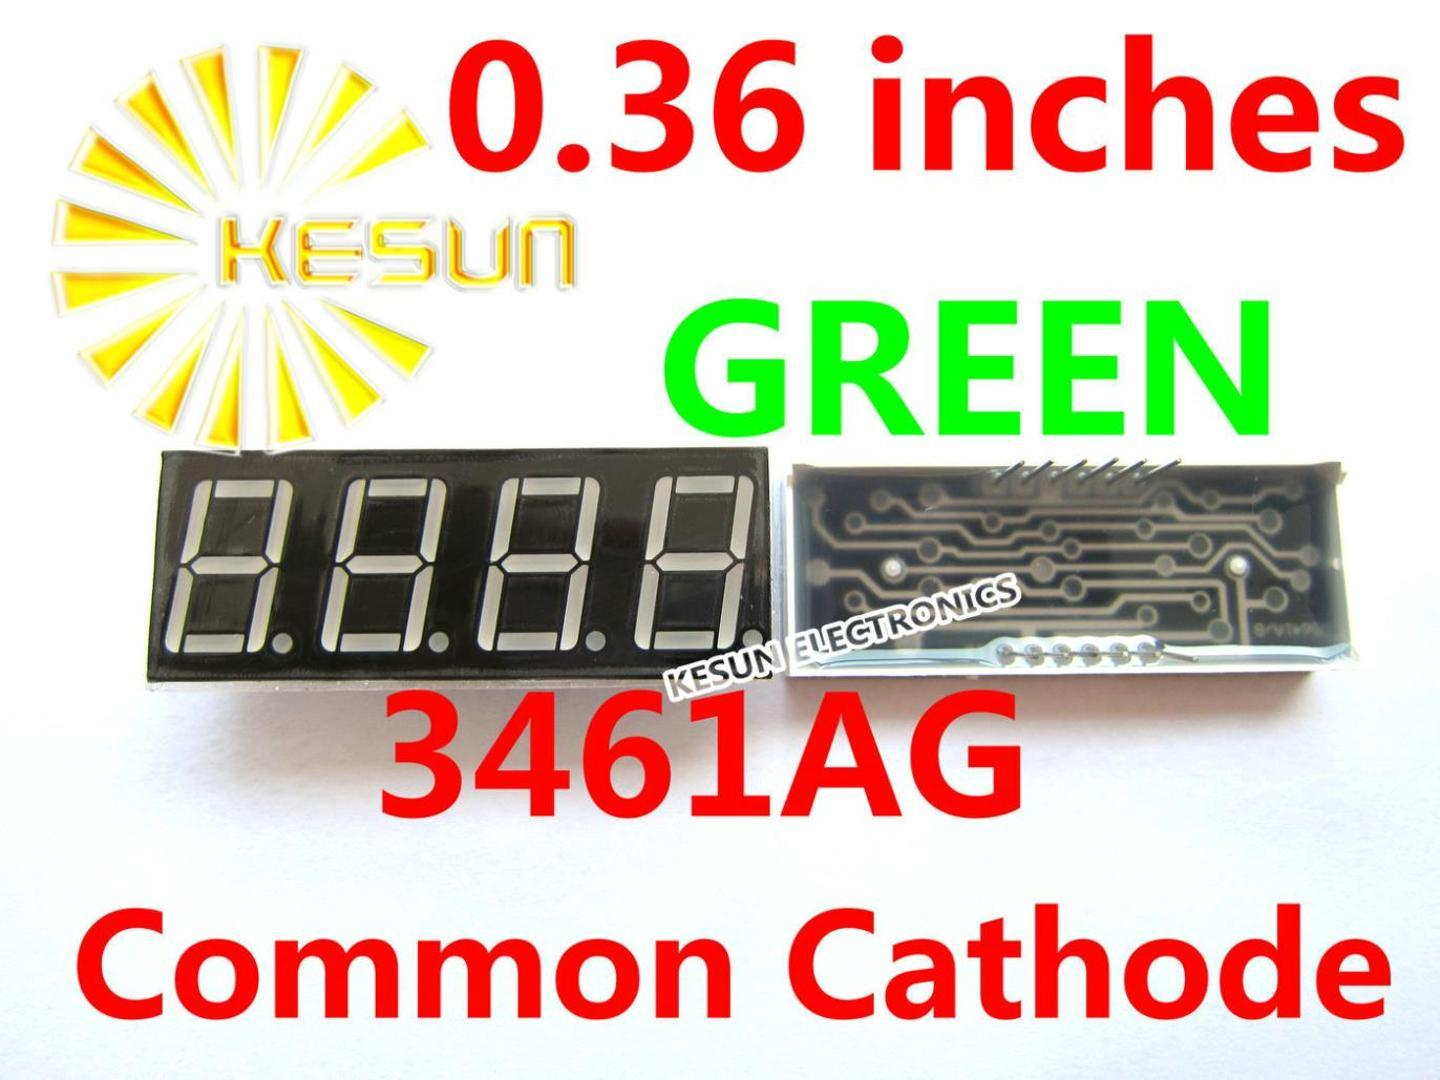 5PCS x 0.36 inches Green Red Common Cathode/Anode 4 Digital Tube 3461AG 3461BG 3461AS 3461BS LED Display Module Small Packet